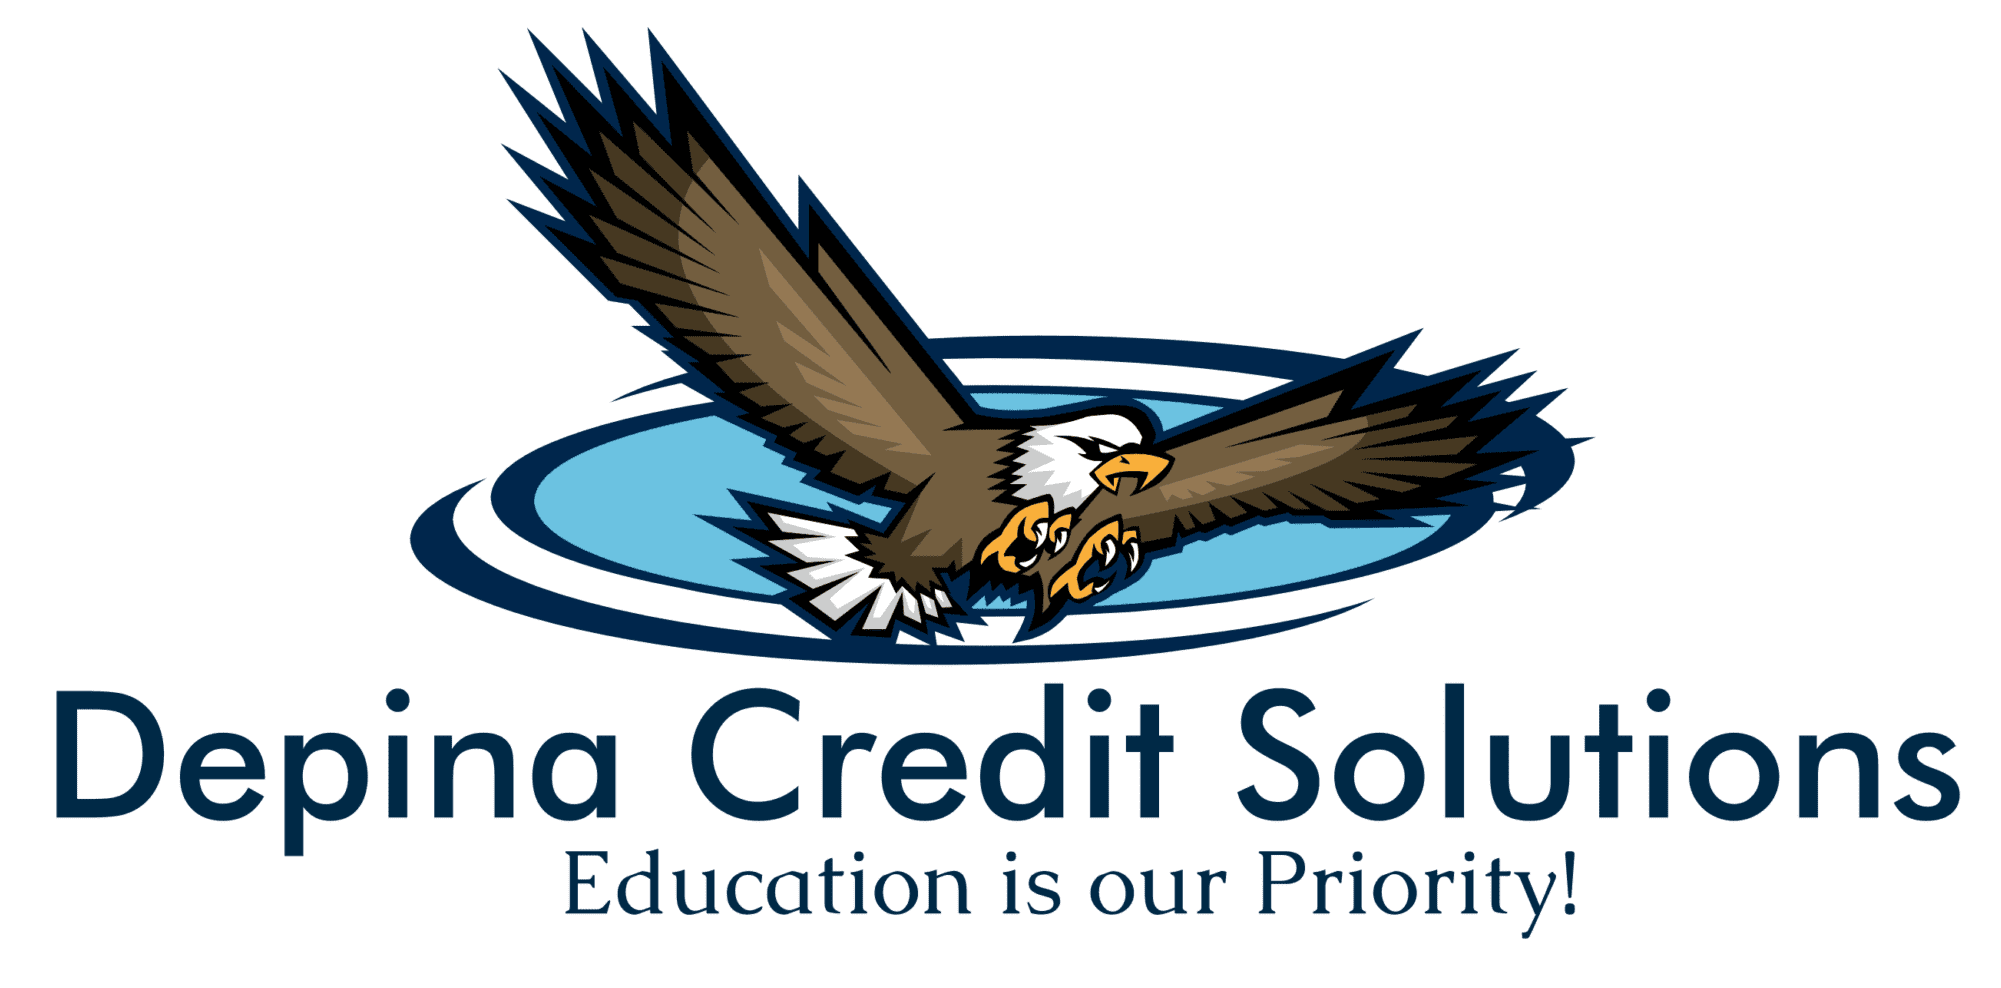 Depina Credit Solutions